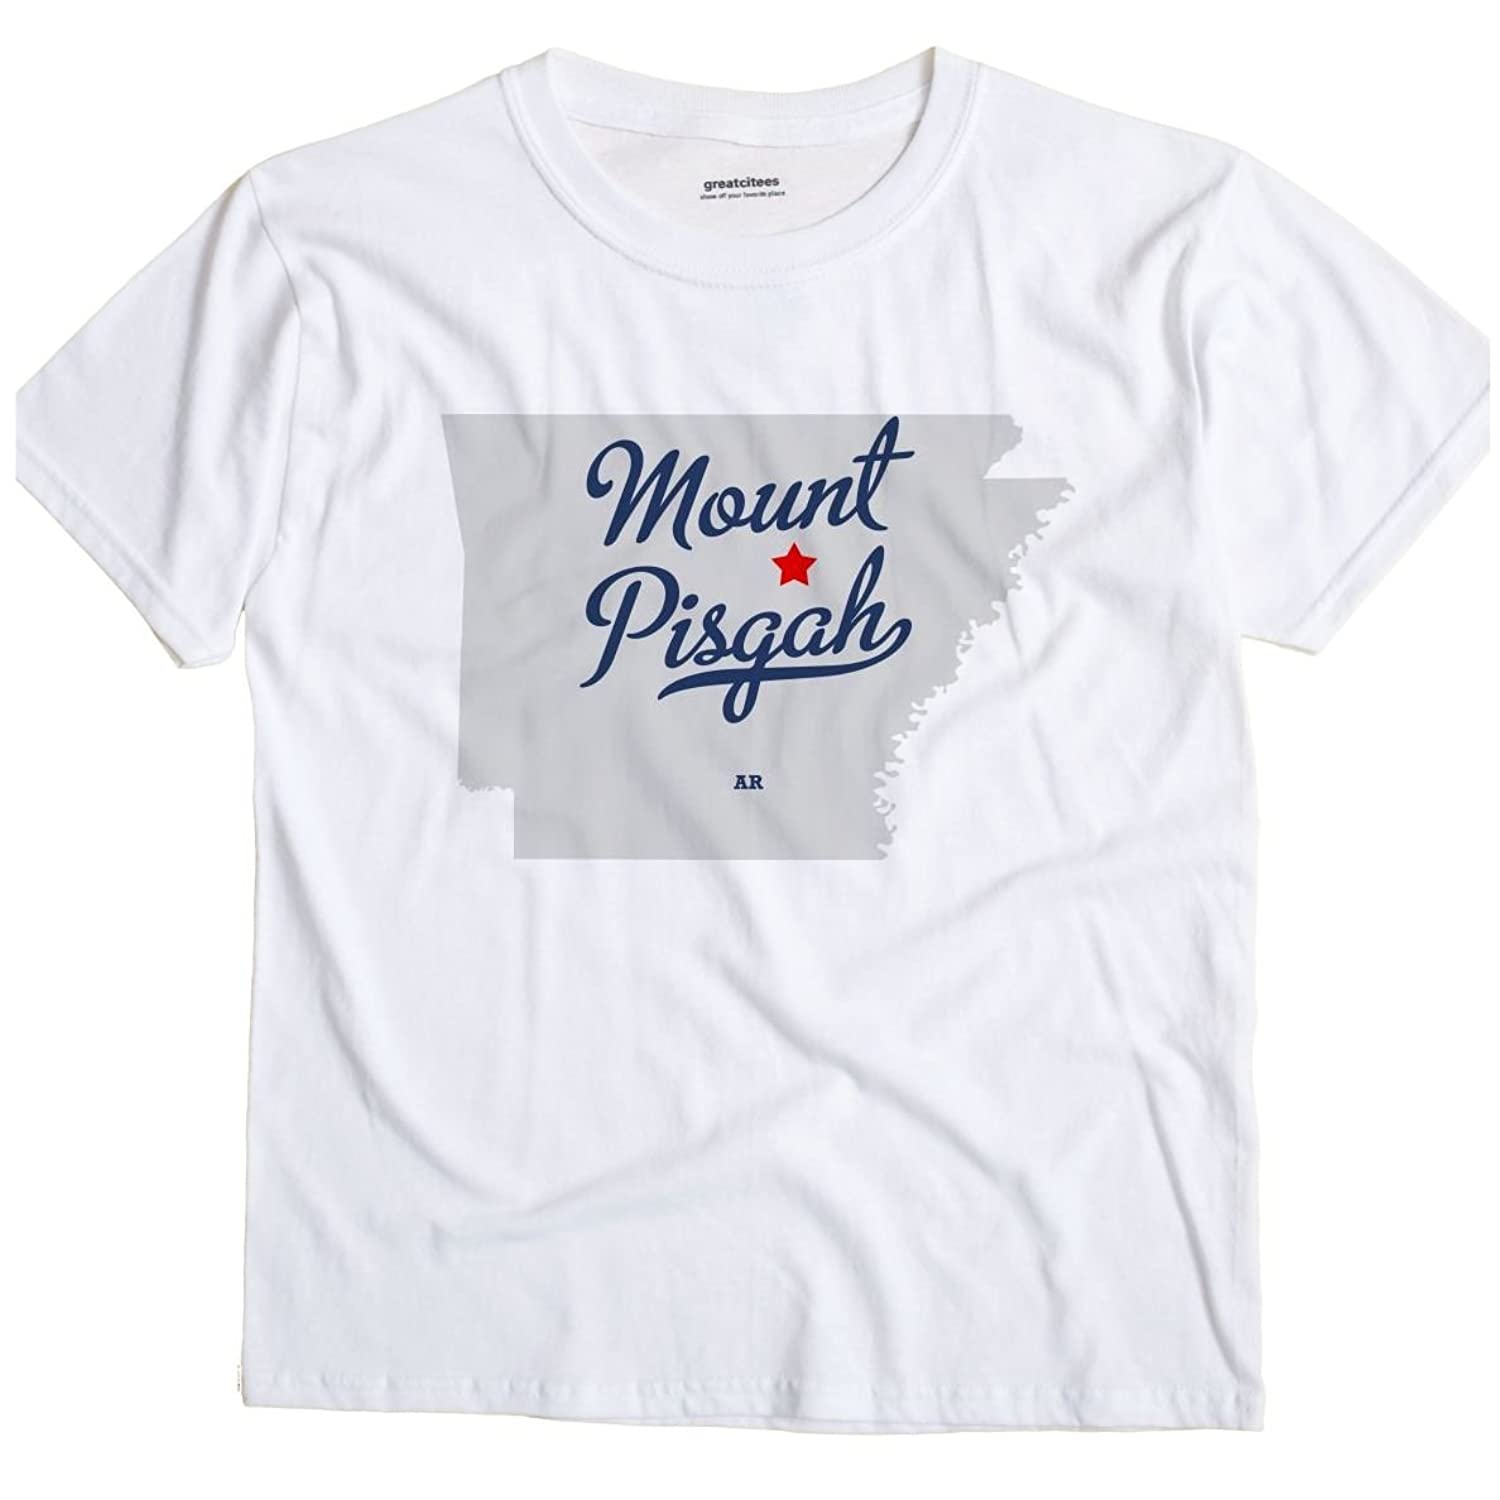 Mount Pisgah Arkansas AR MAP GreatCitees Unisex Souvenir T Shirt